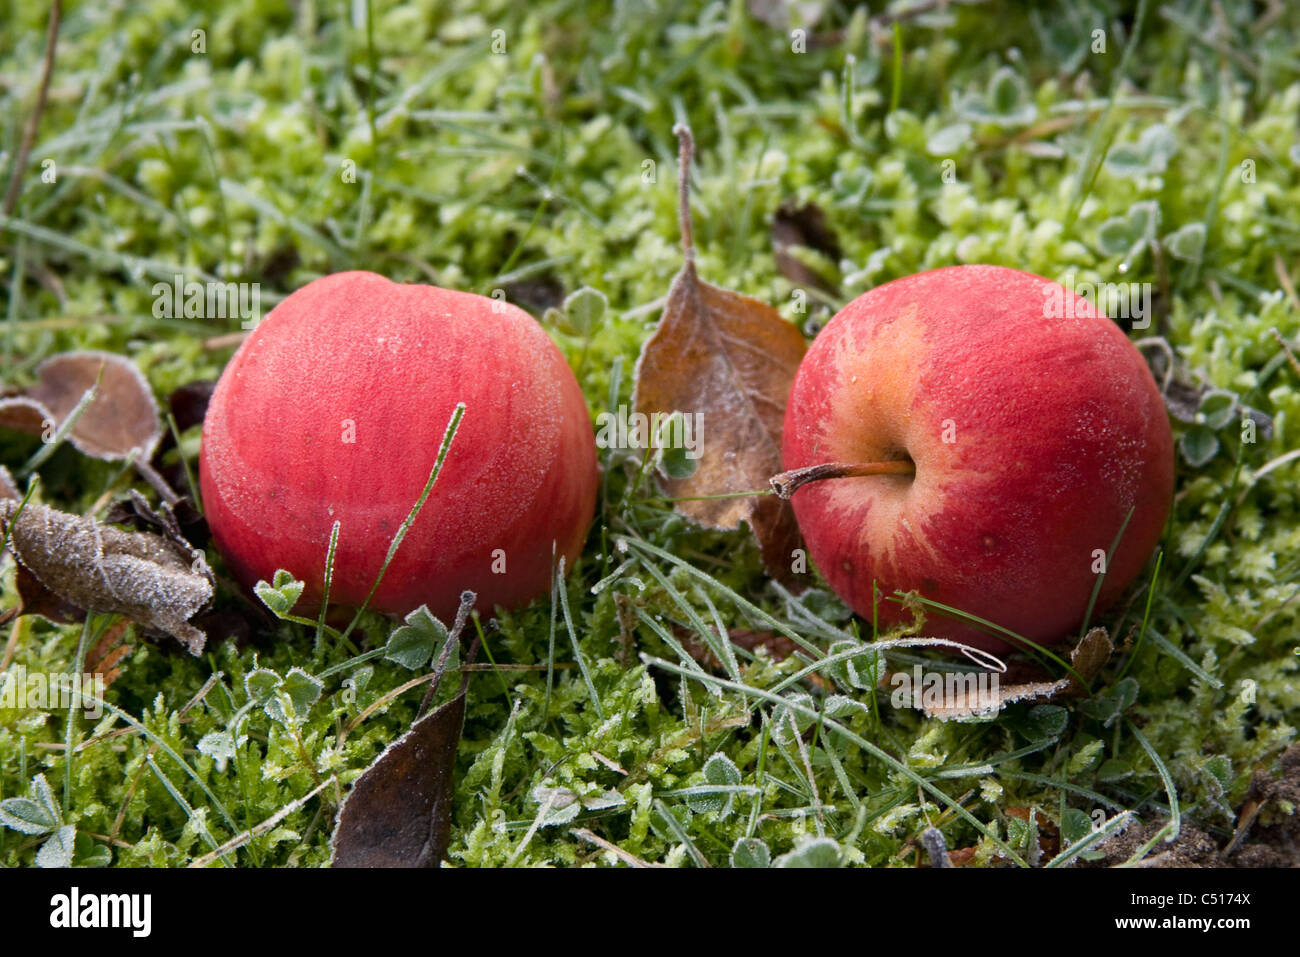 Frost covered apples resting on the ground - Stock Image